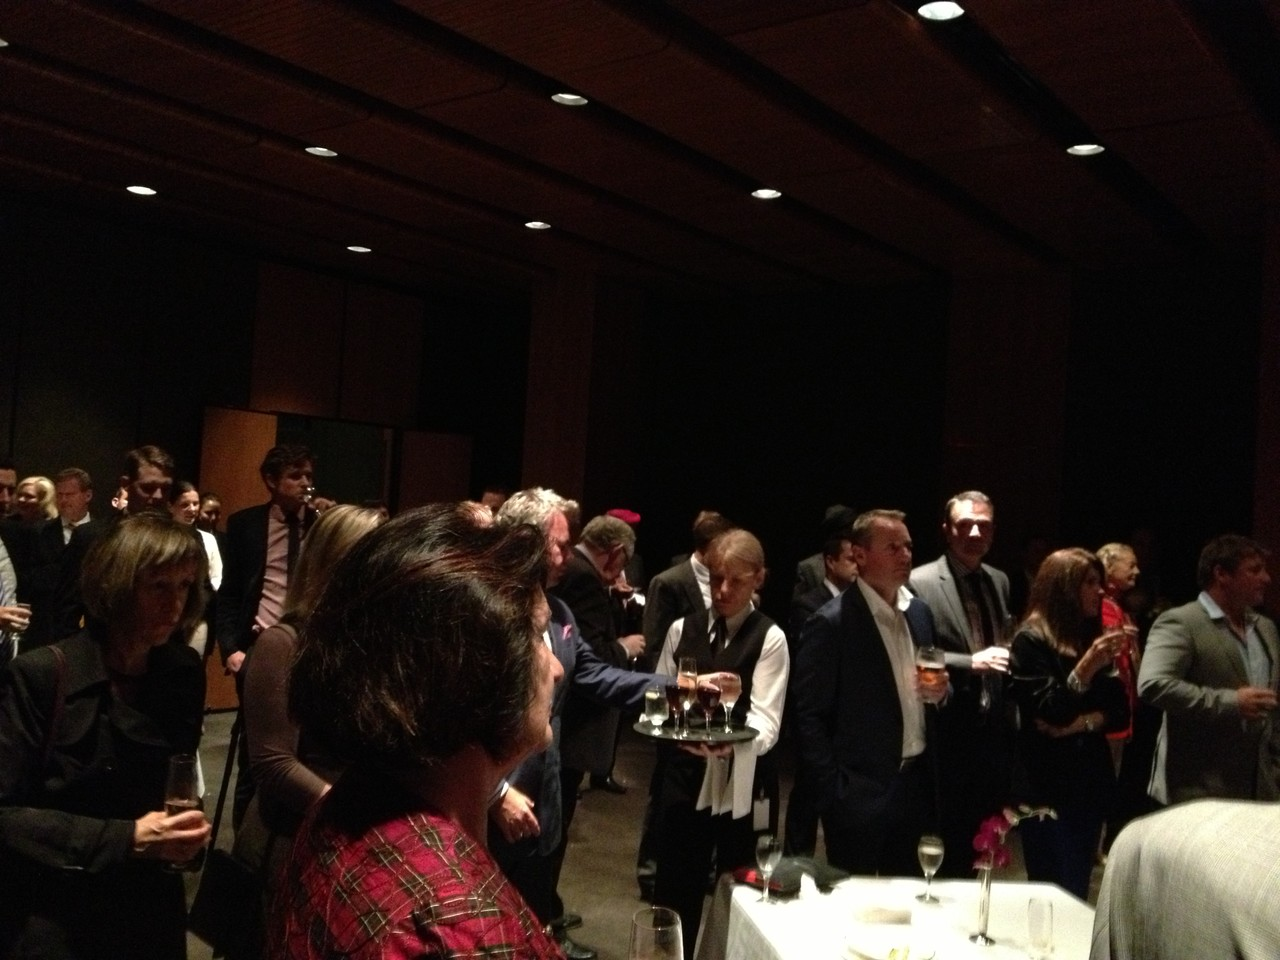 Guests at NSW Parliament House supporting the Australia Youth Trust